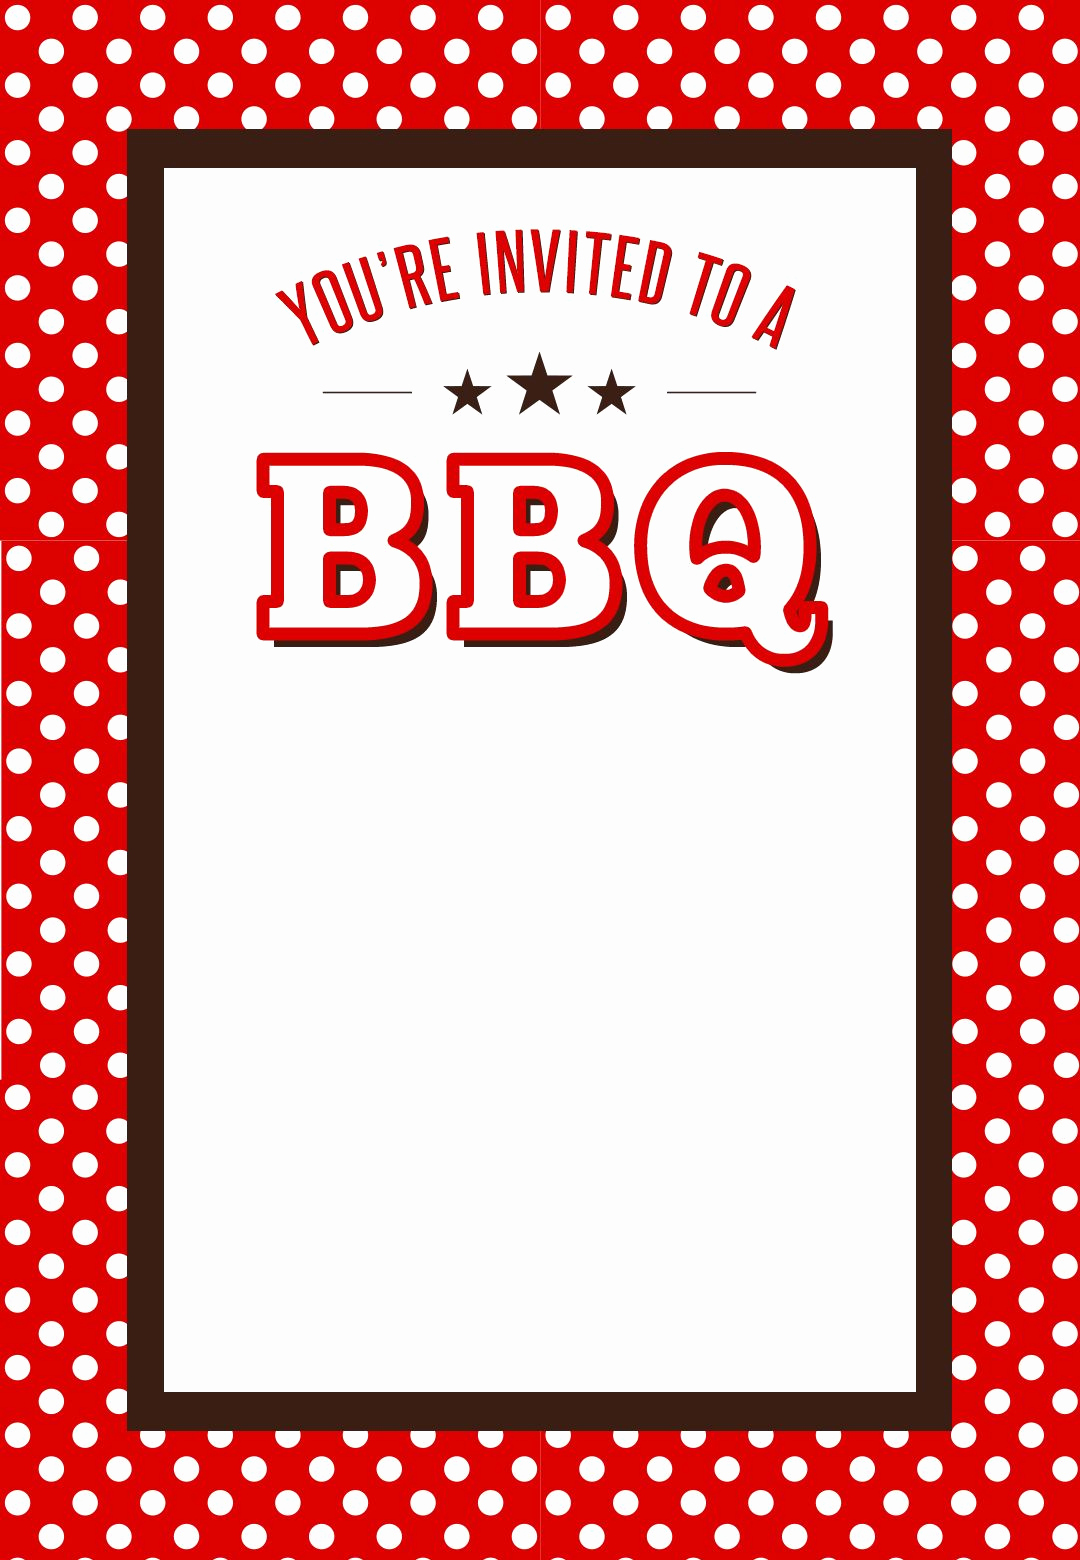 Free Bbq Invitation Template Beautiful Bbq Party Invitation Free Printables